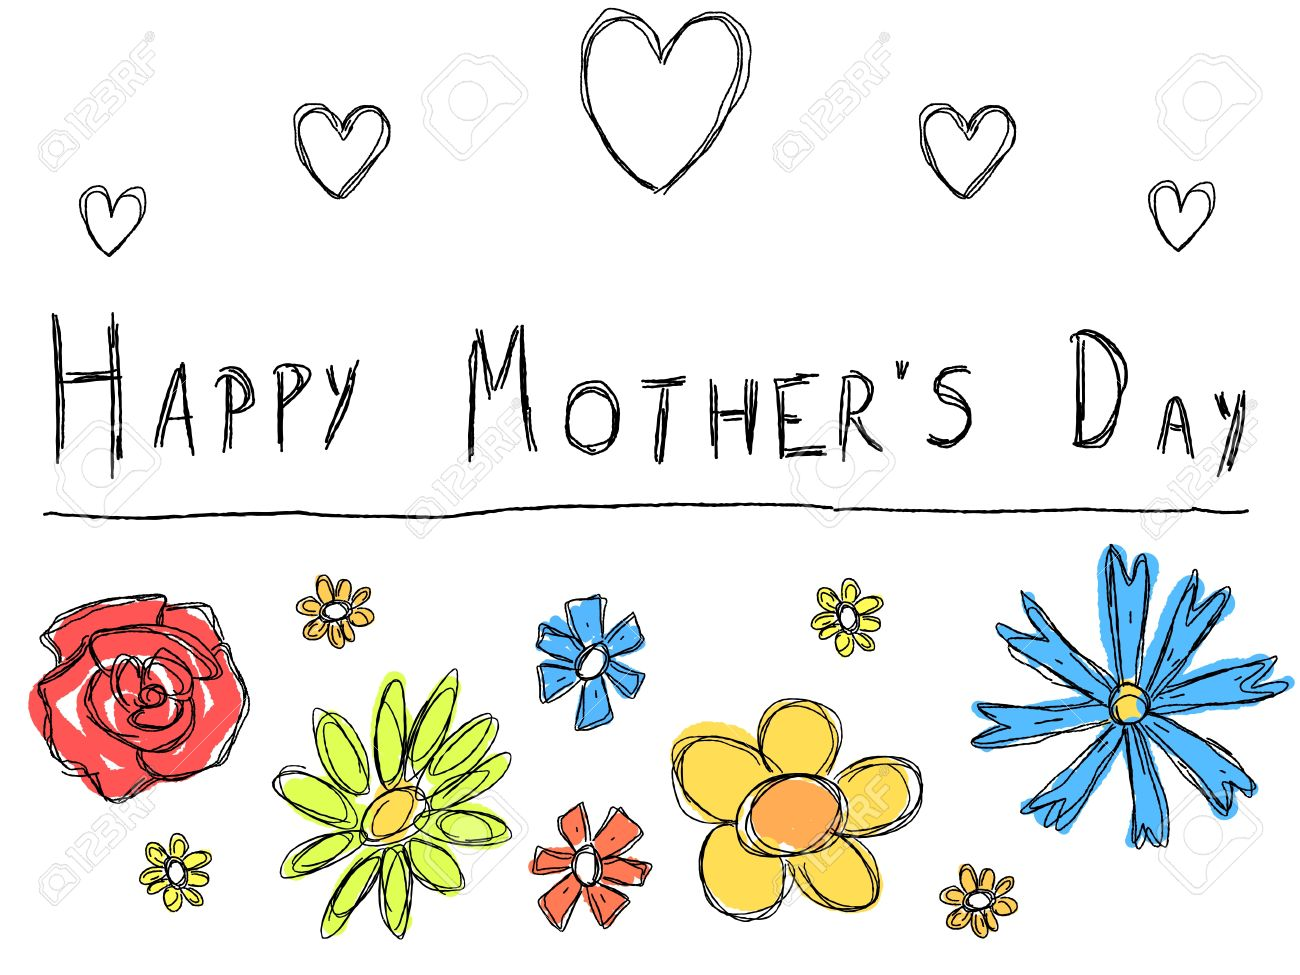 happy mother s day greeting card with doodle scrapbook flowers